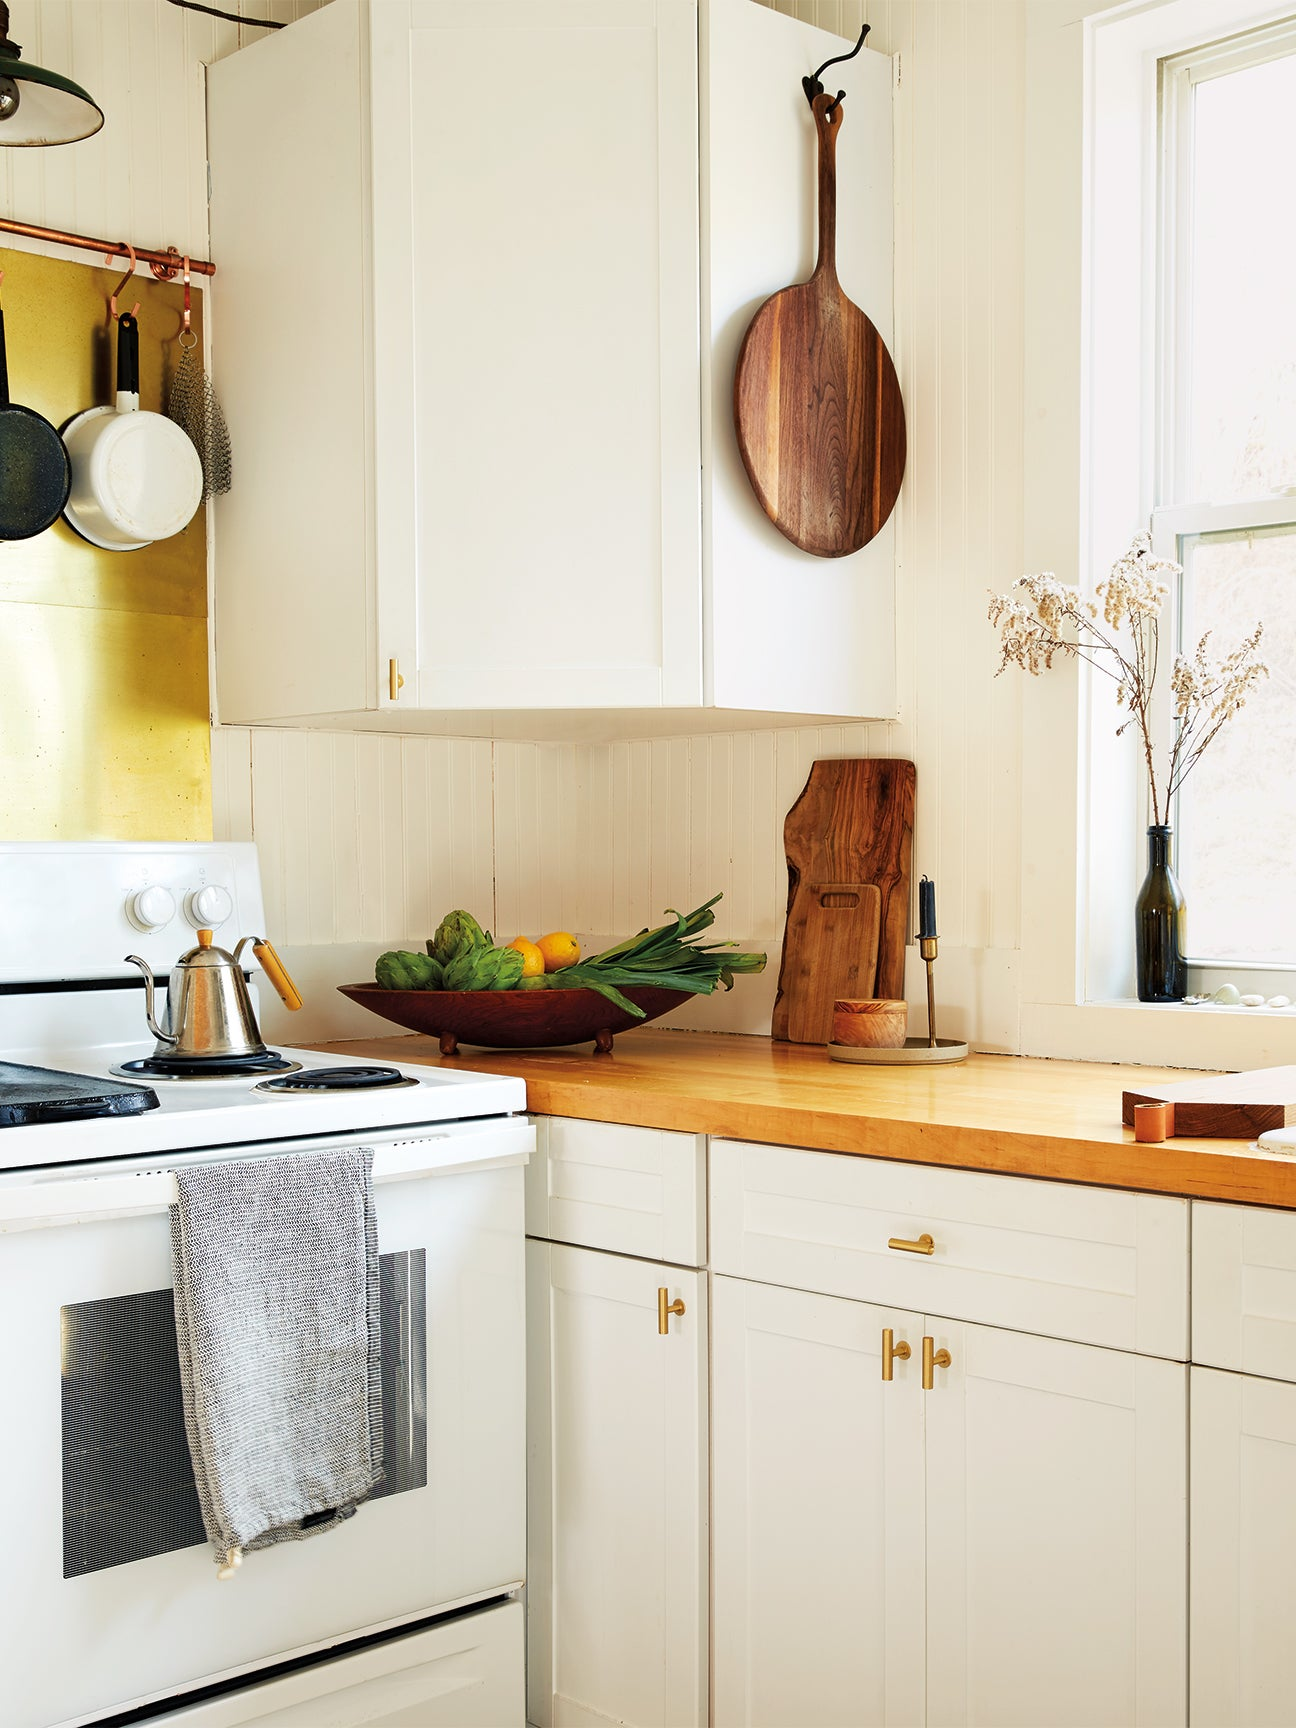 tiny kitchen with butcher block counter